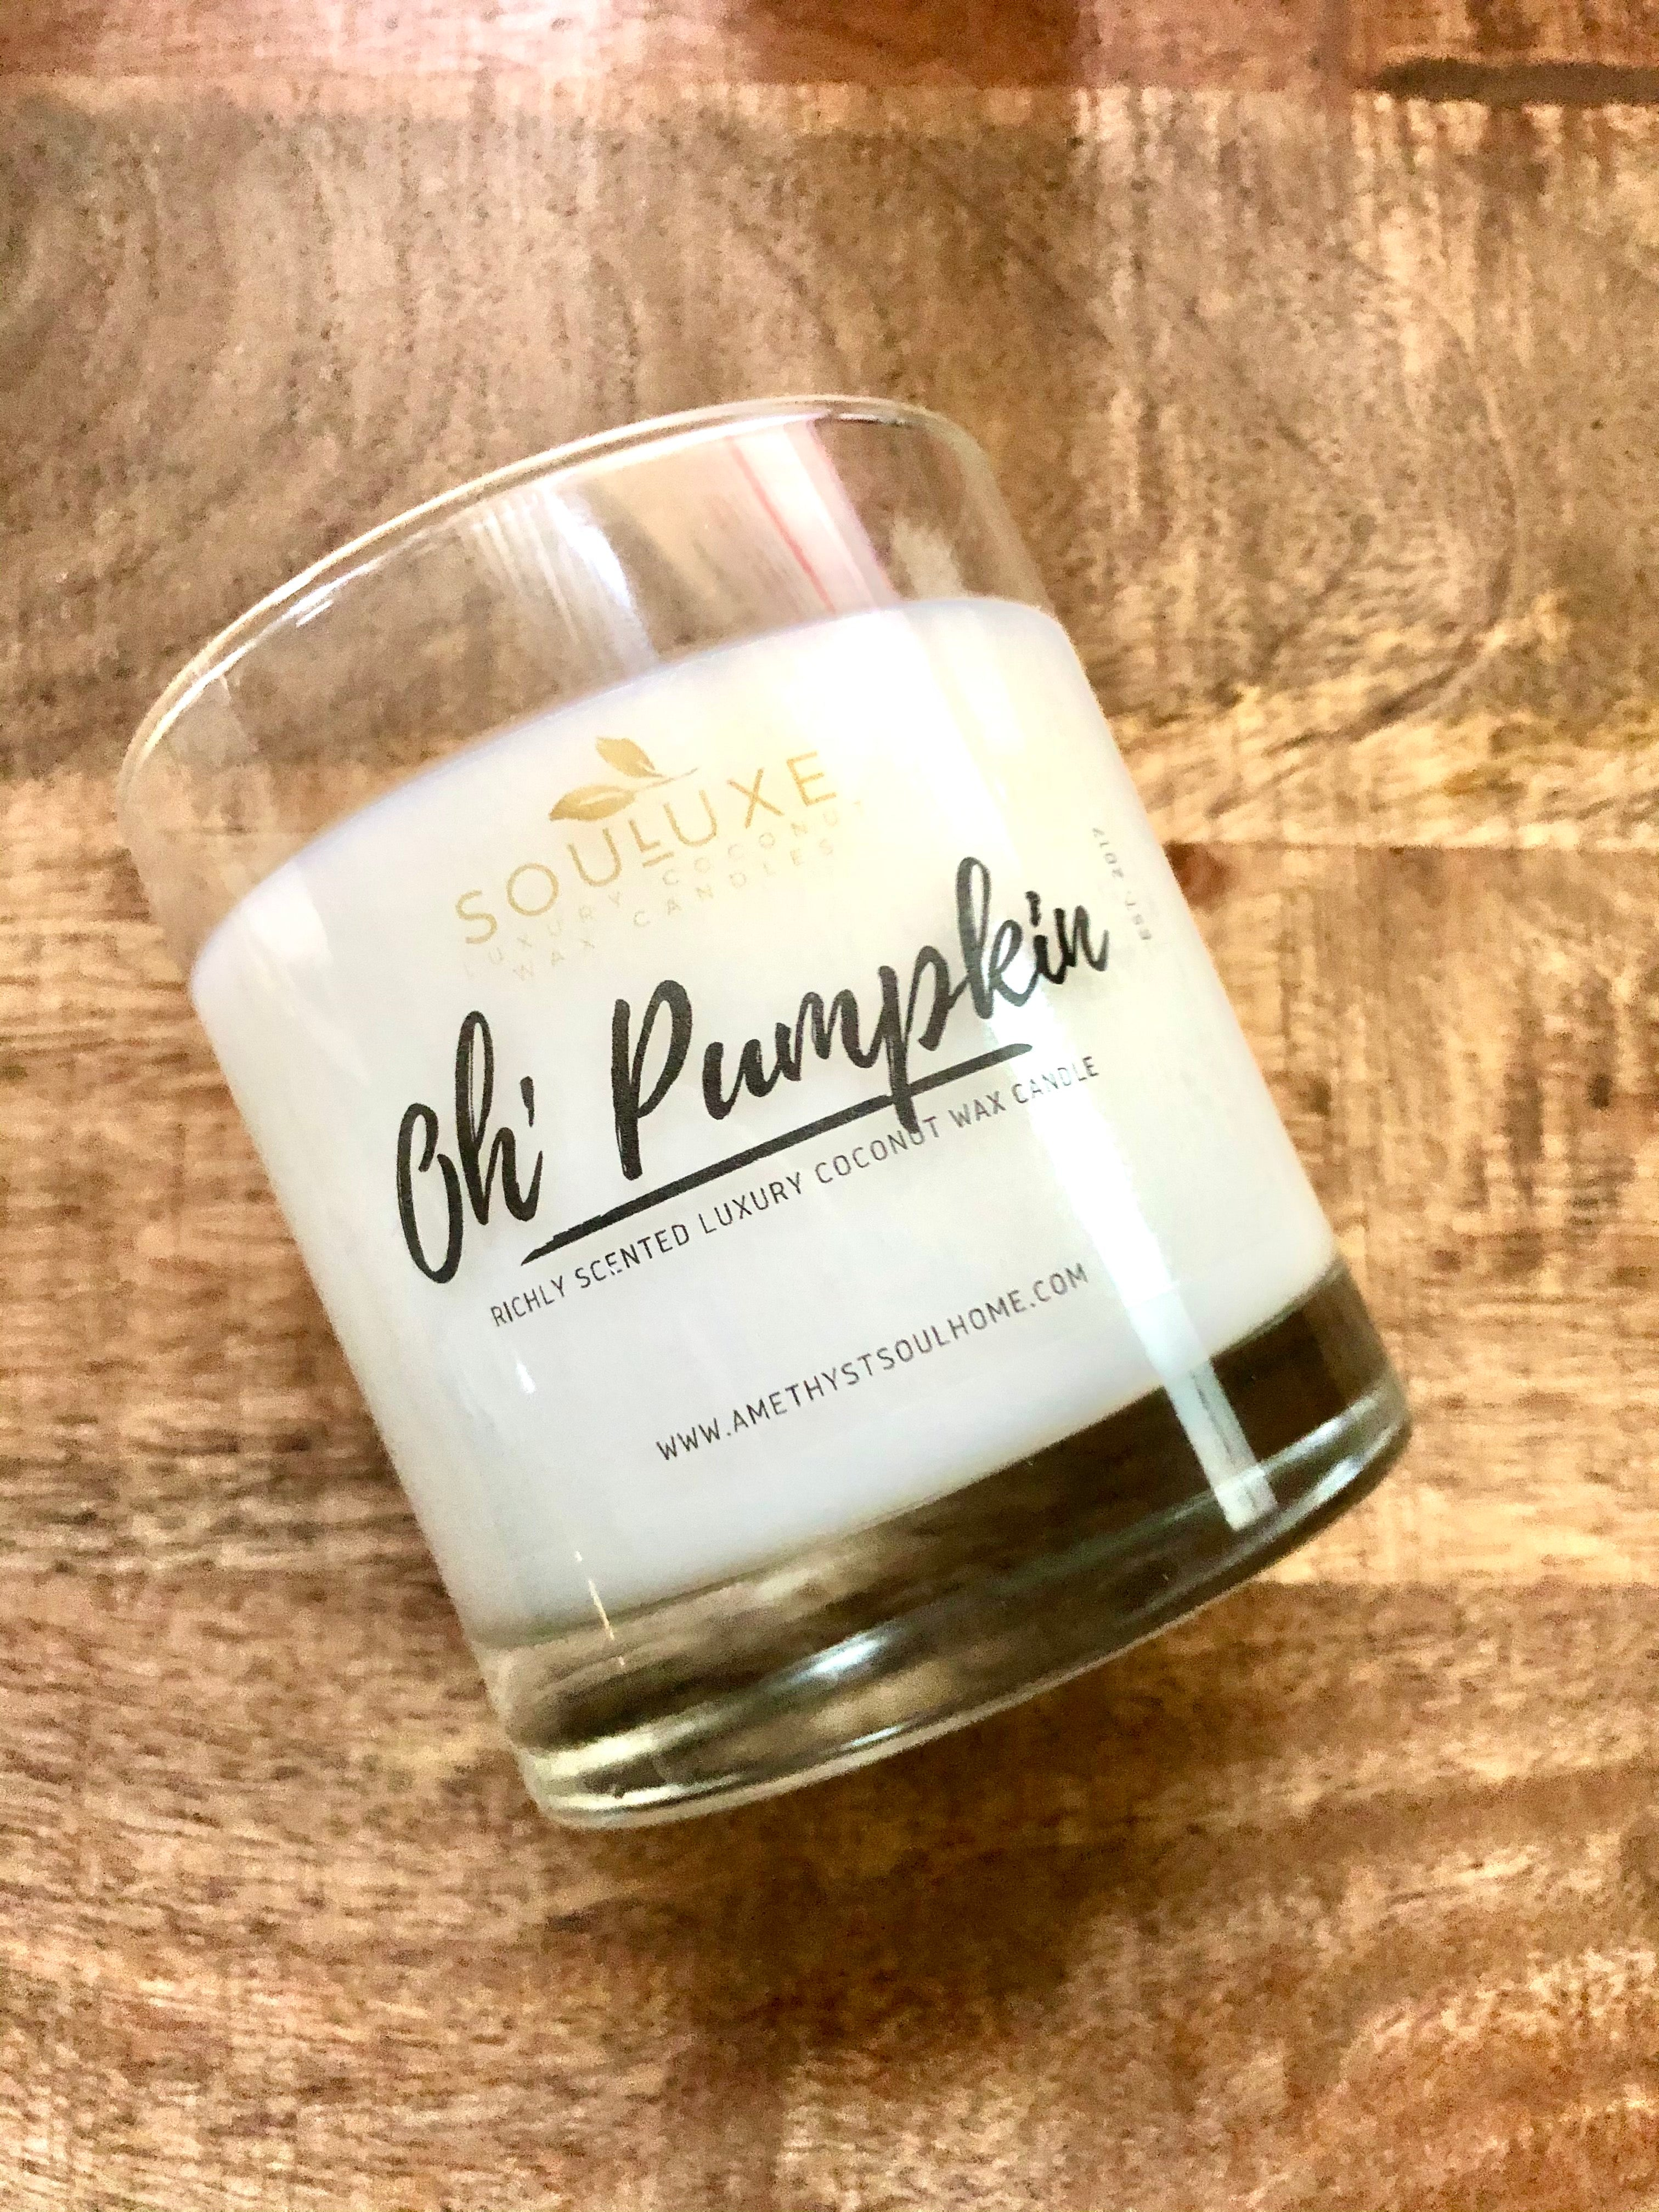 SouLuxe Oh' Pumpkin 7oz. Candle